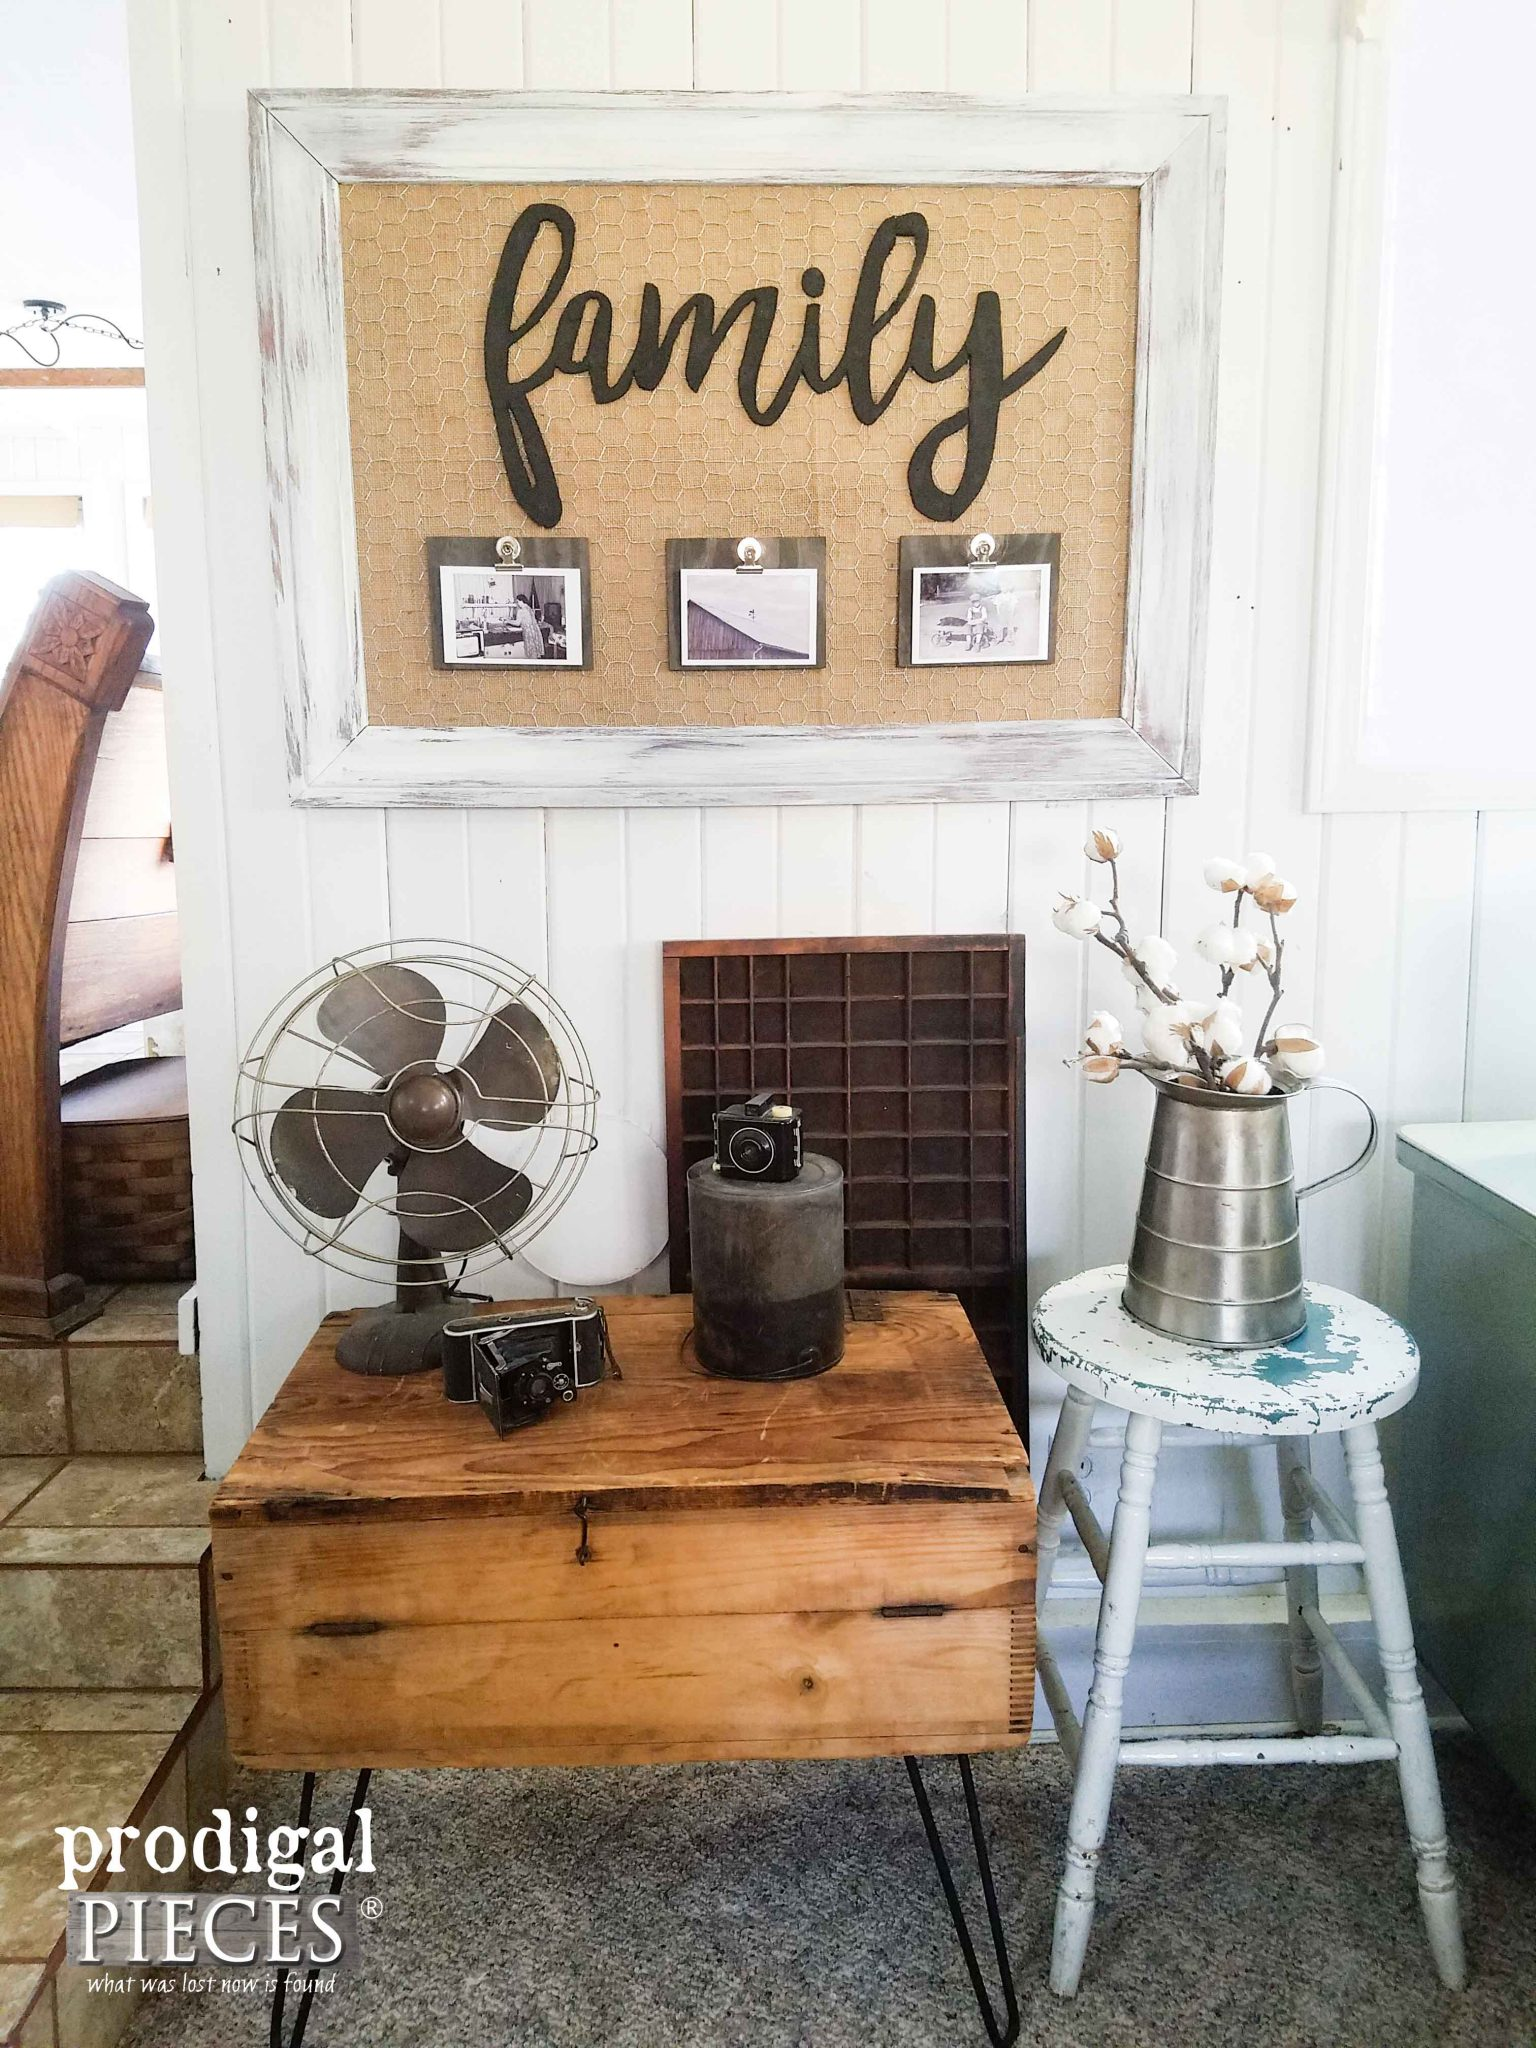 Amazing Reclaimed Framed Wall Art with Family Memory Board by Prodigal Pieces prodigalpieces